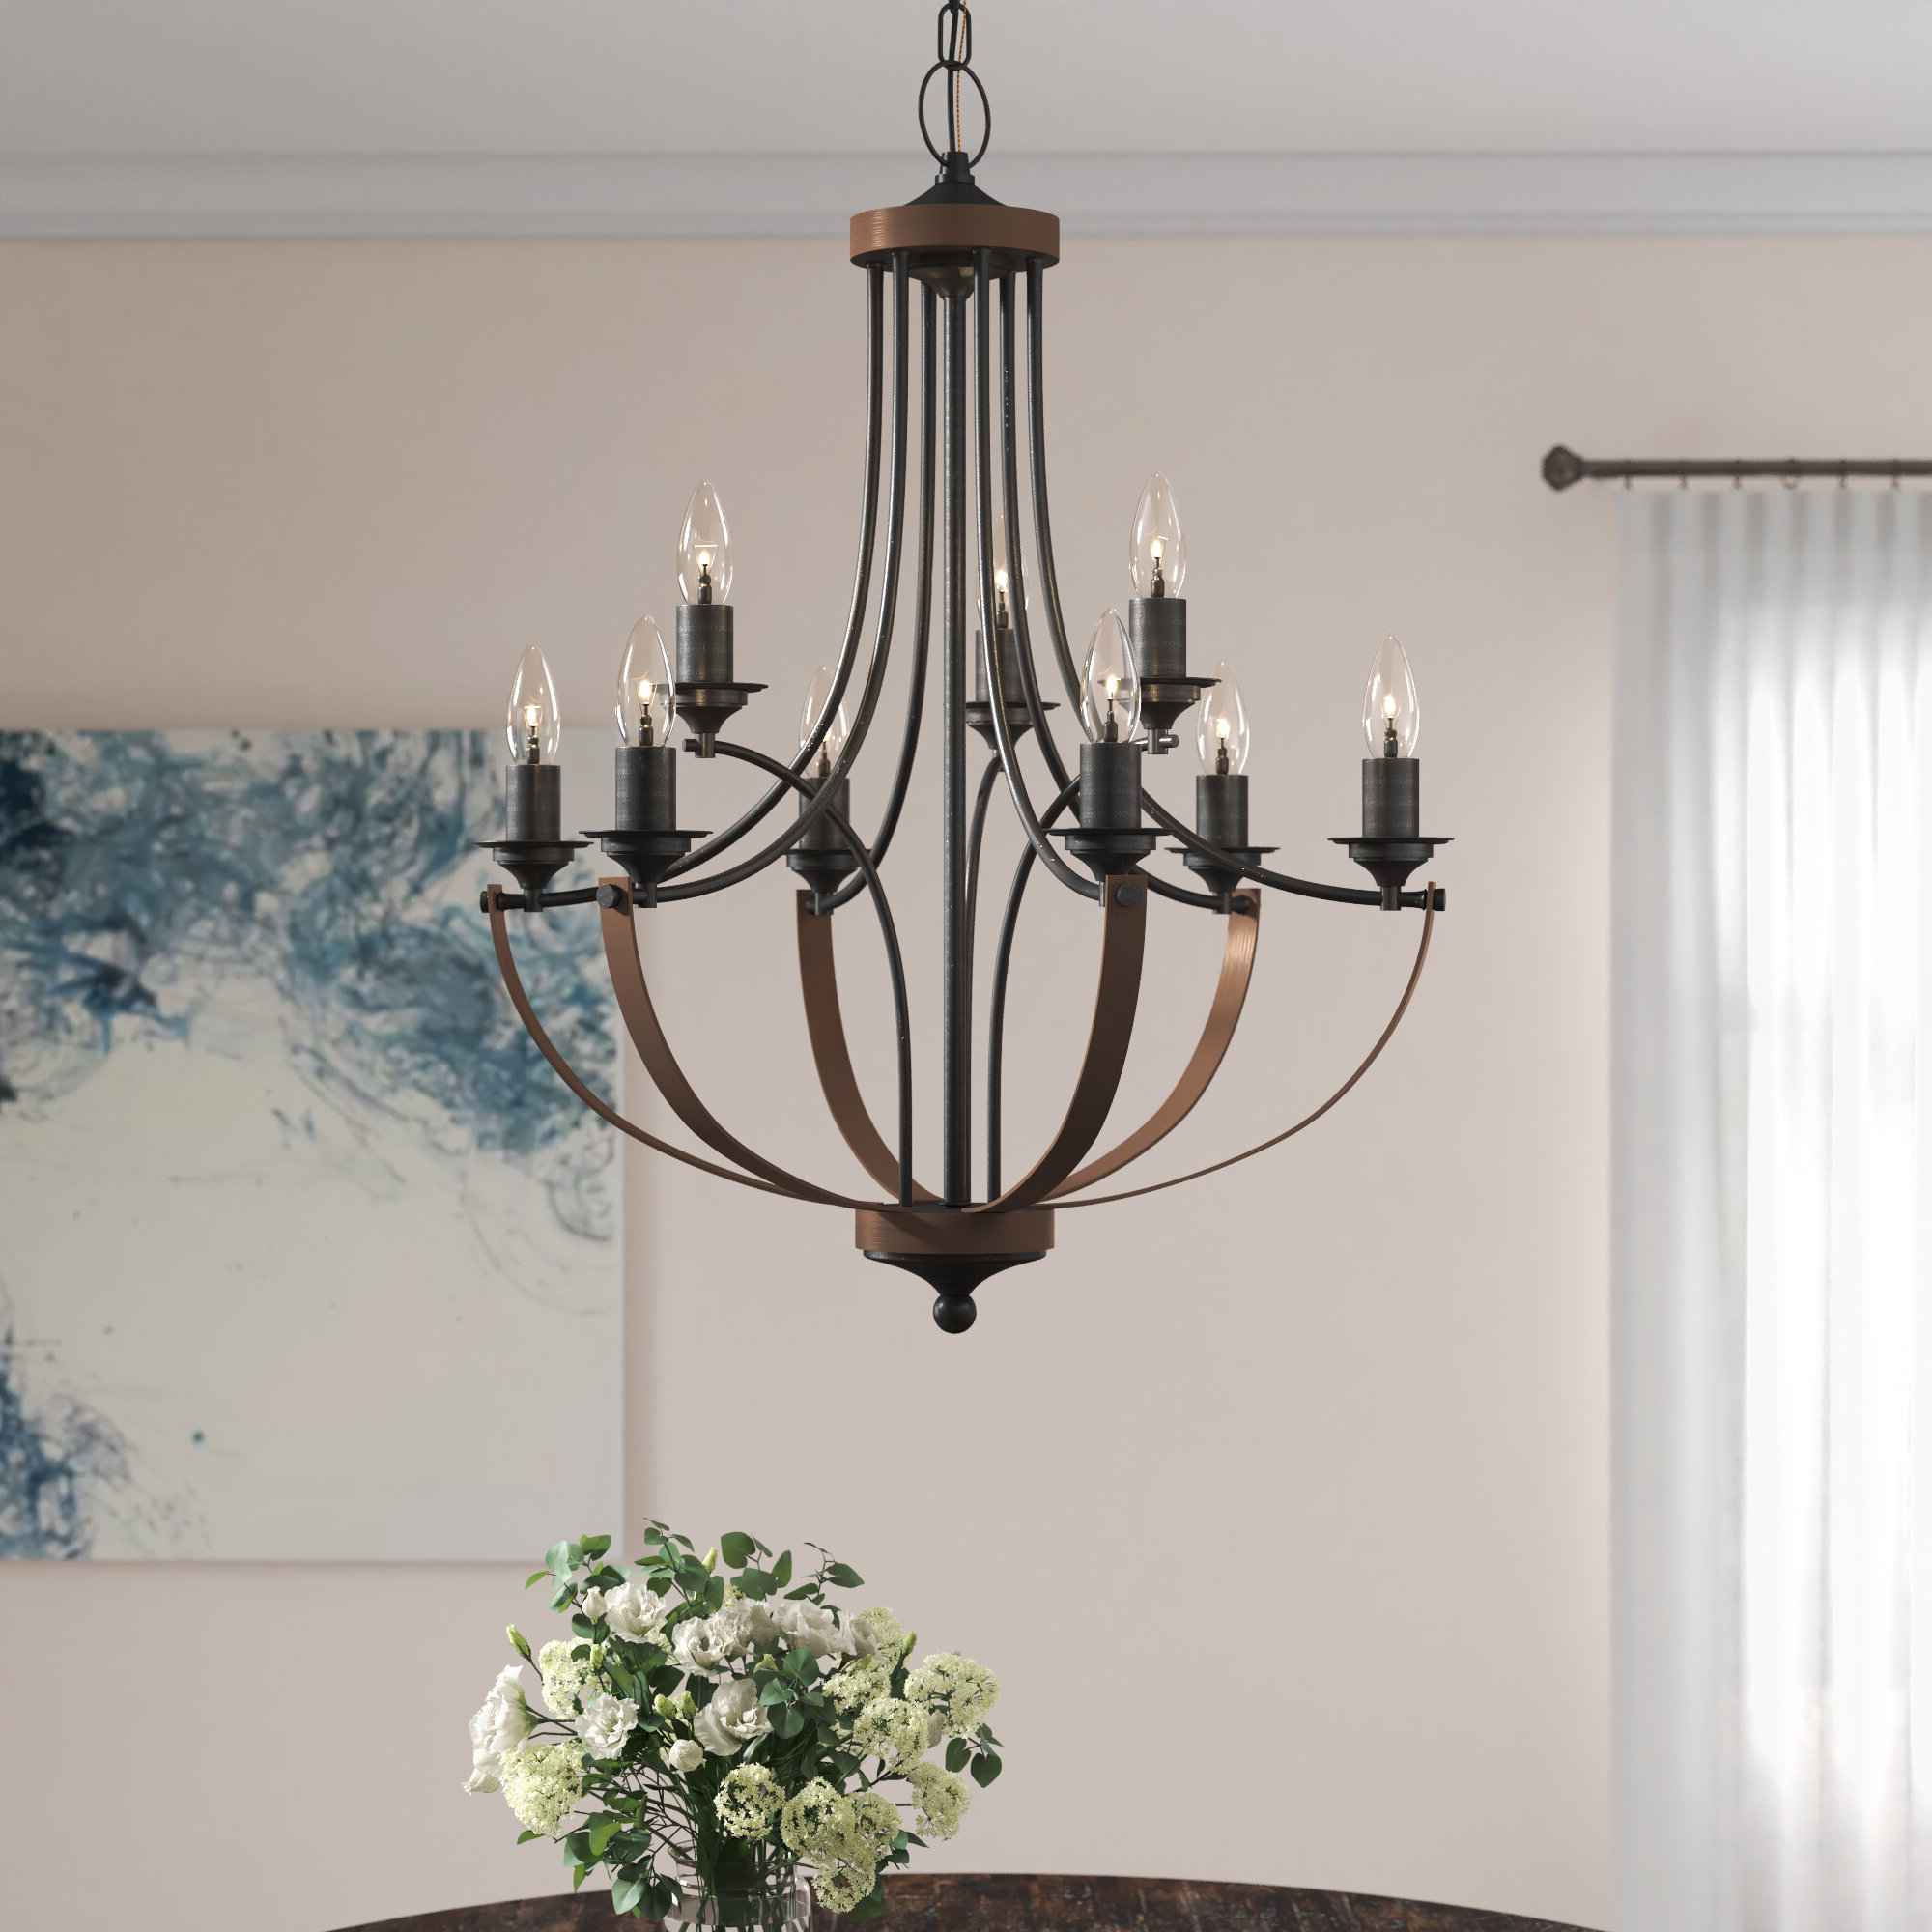 Most Recent Camilla 9 Light Candle Style Chandelier In Phifer 6 Light Empire Chandeliers (View 8 of 20)